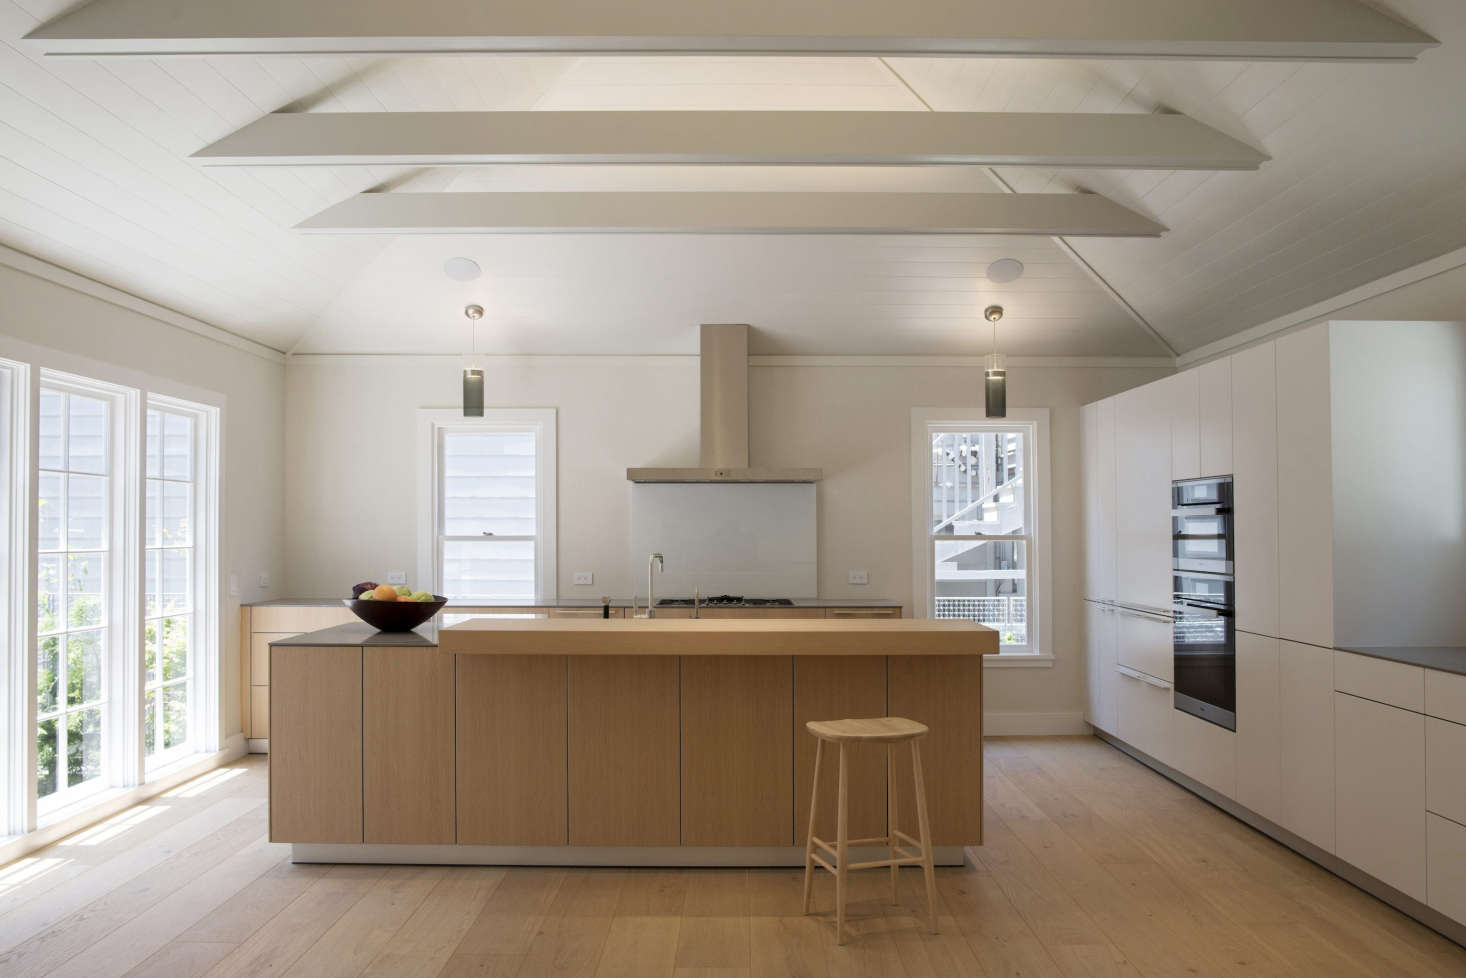 Expert Advice An Architect S 15 Essential Tips For Designing The Kitchen Remodelista